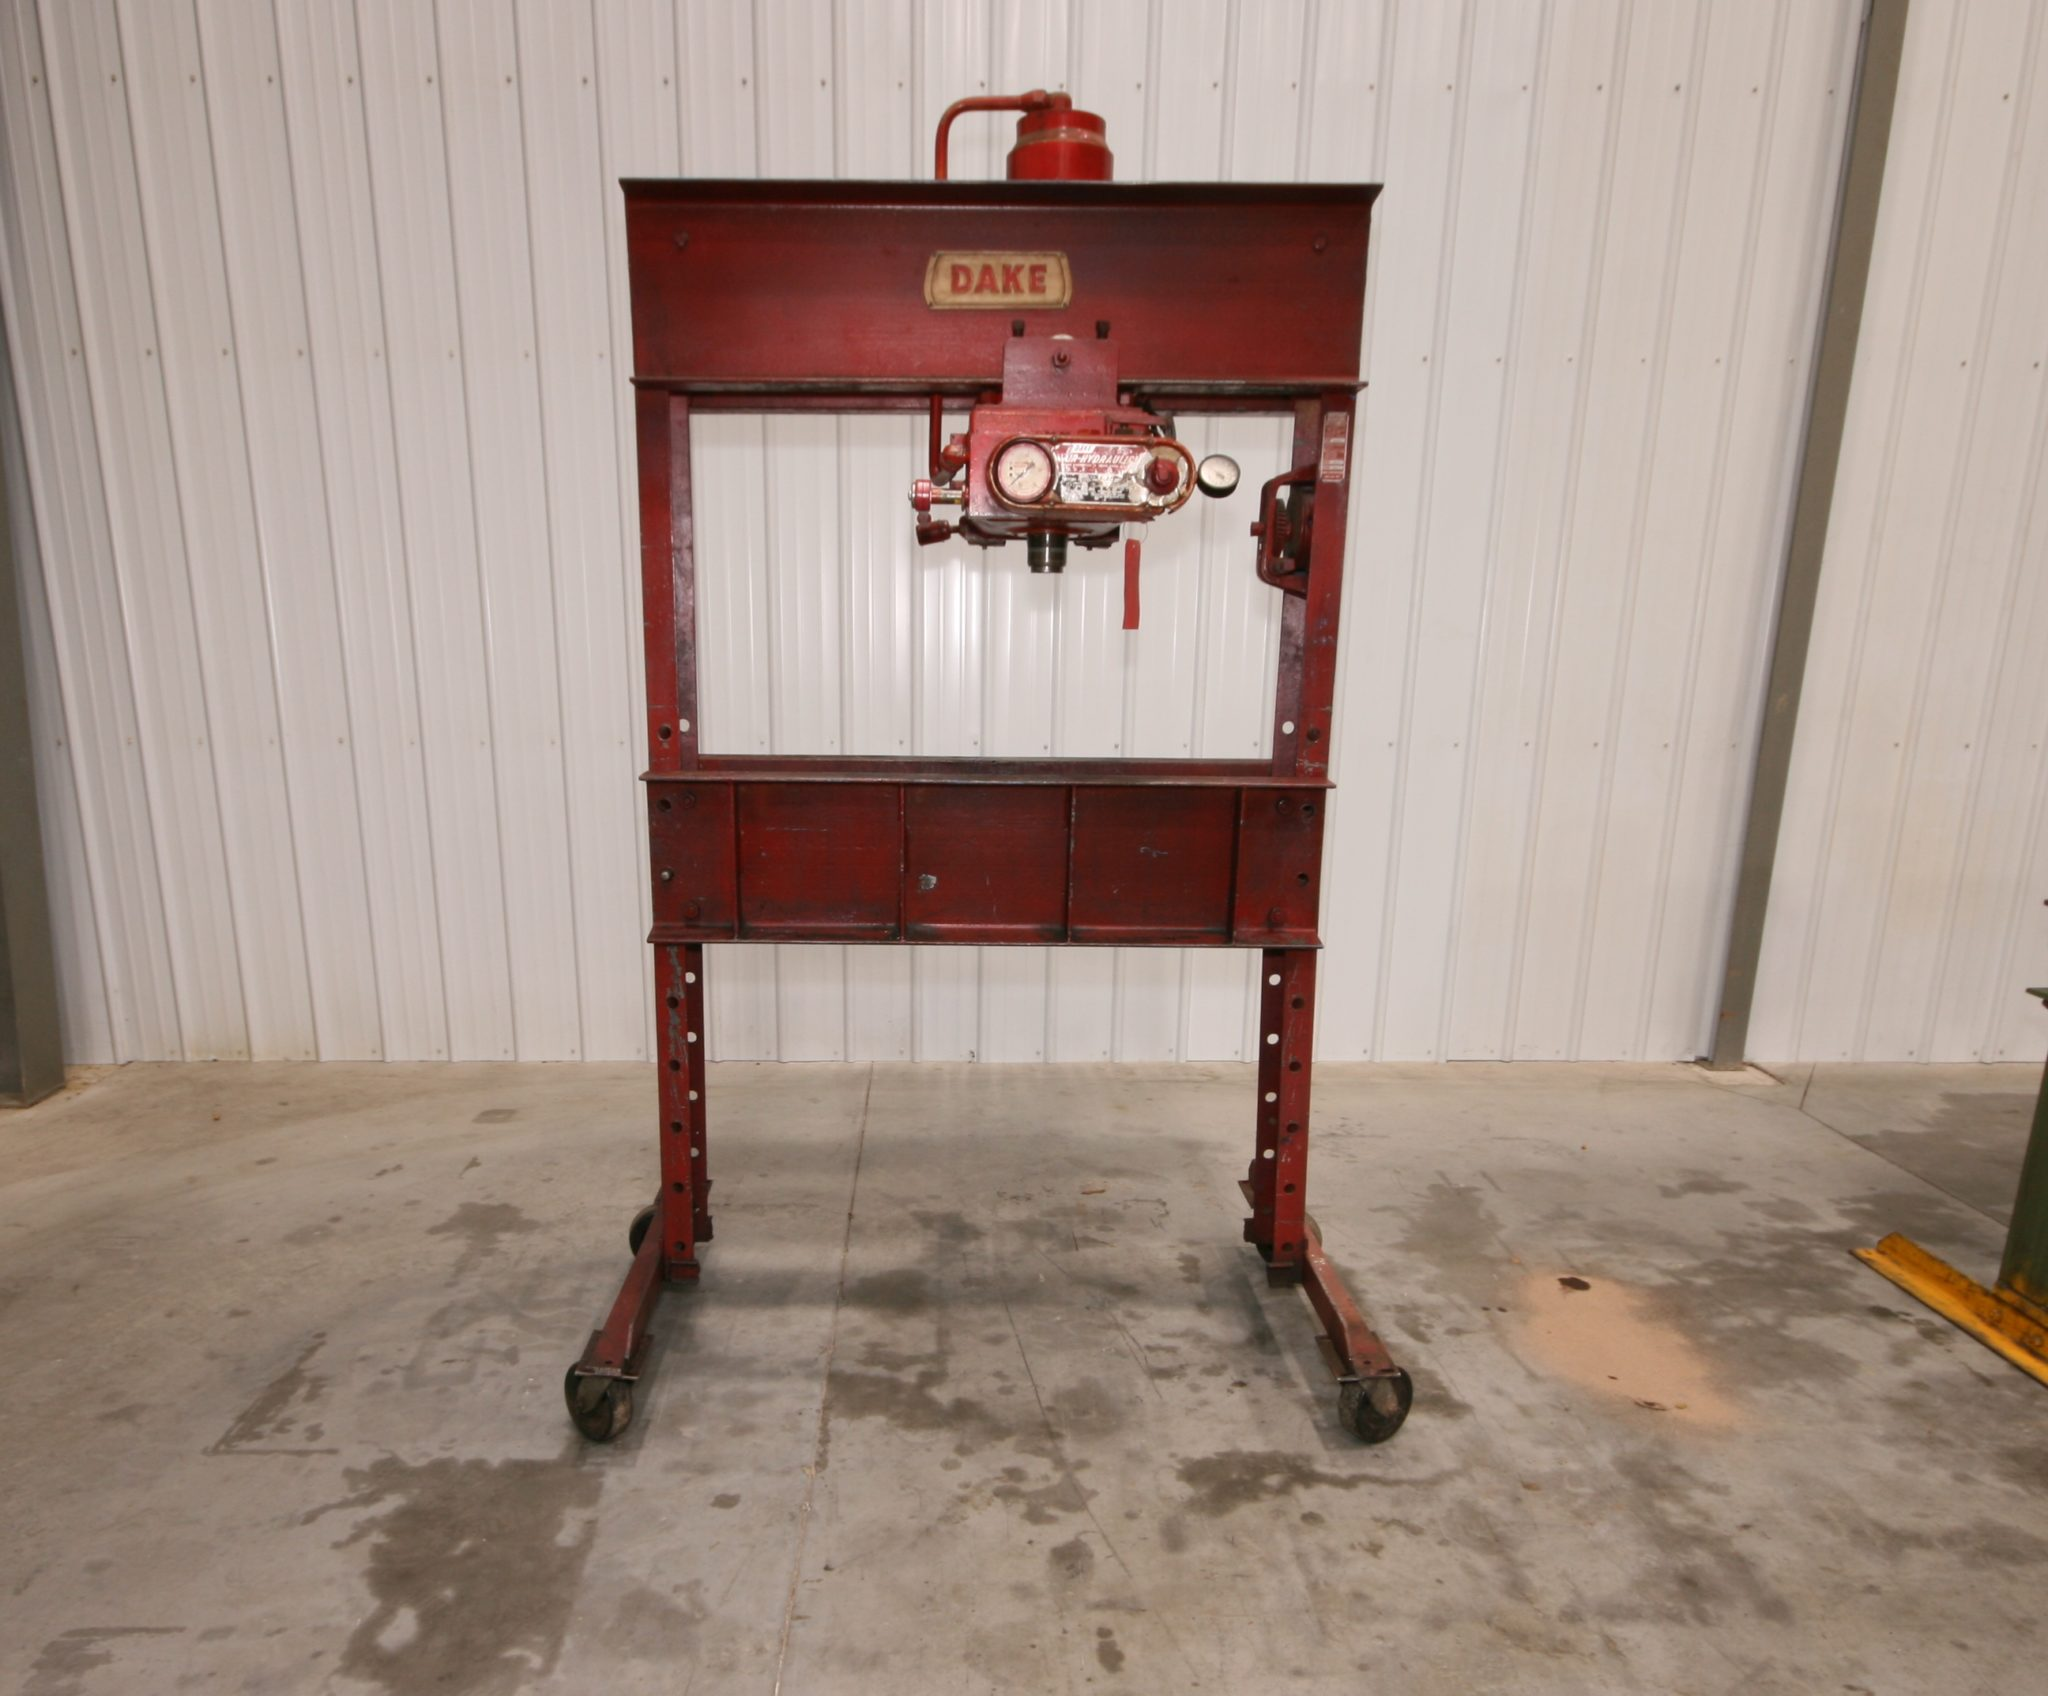 Dake 75 Ton Air Hydraulic H Frame Press Model 6 575